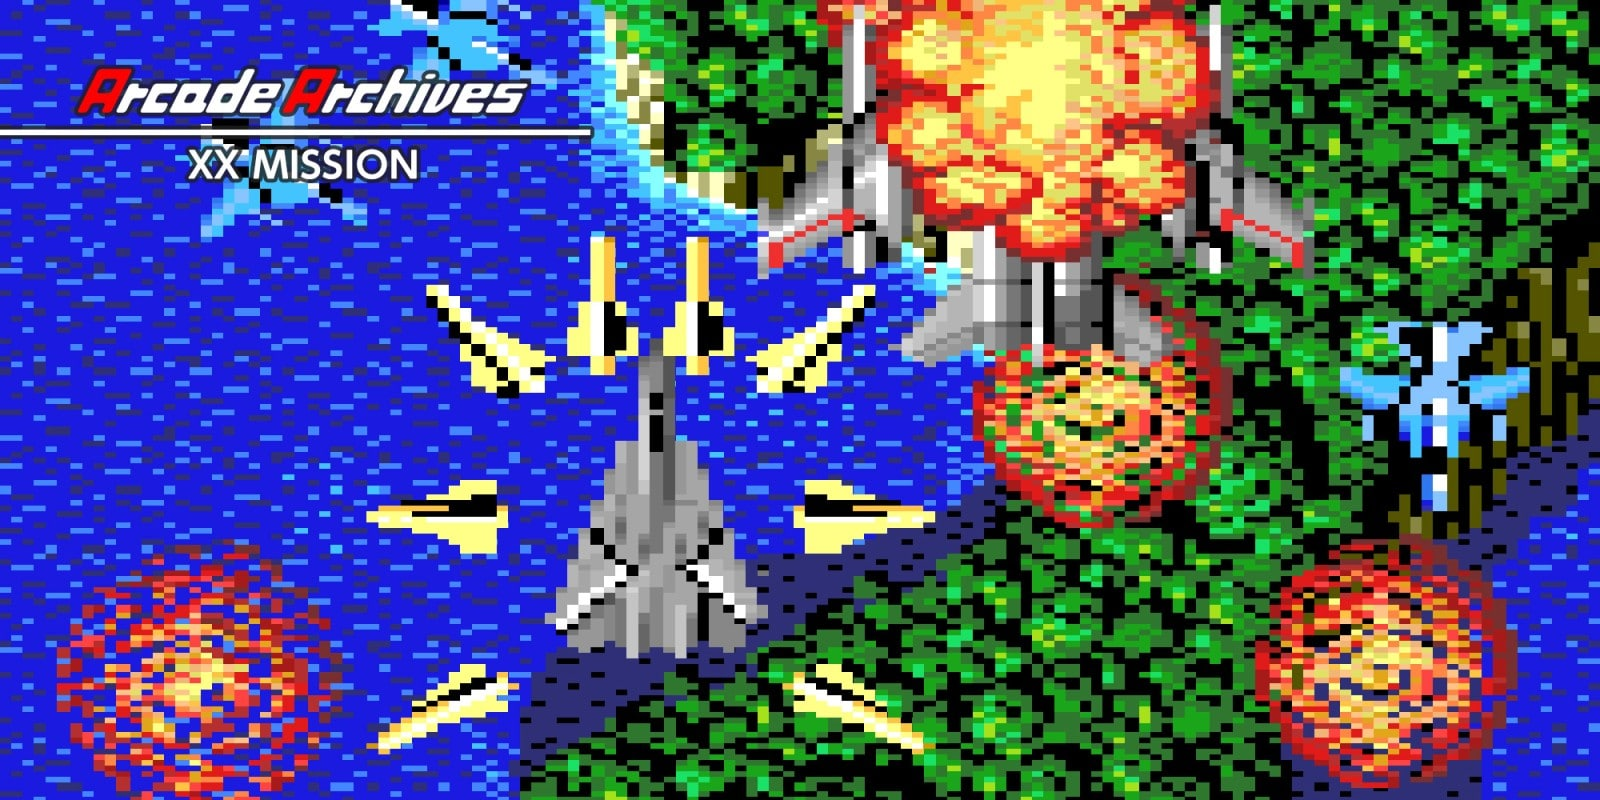 Arcade Archives XX MISSION